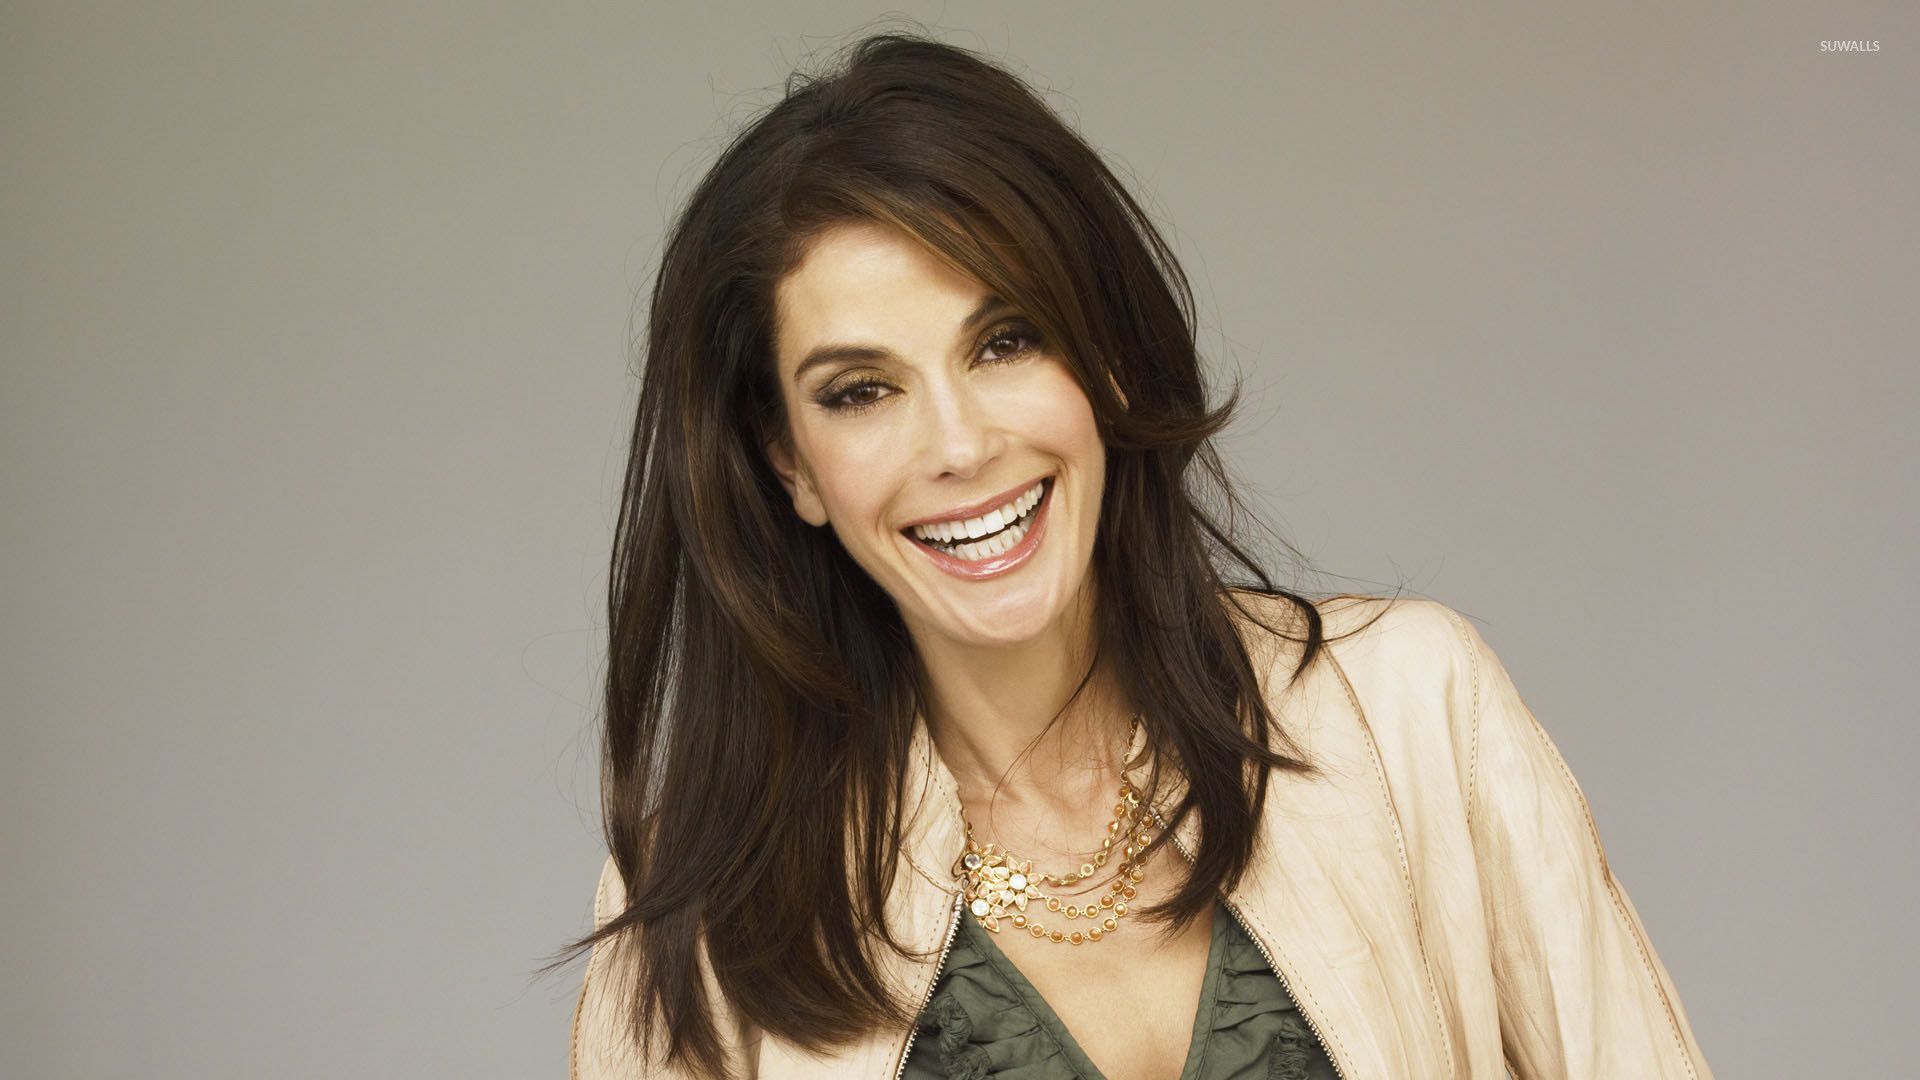 1920x1080 Teri Hatcher with beautiful smile wallpaper